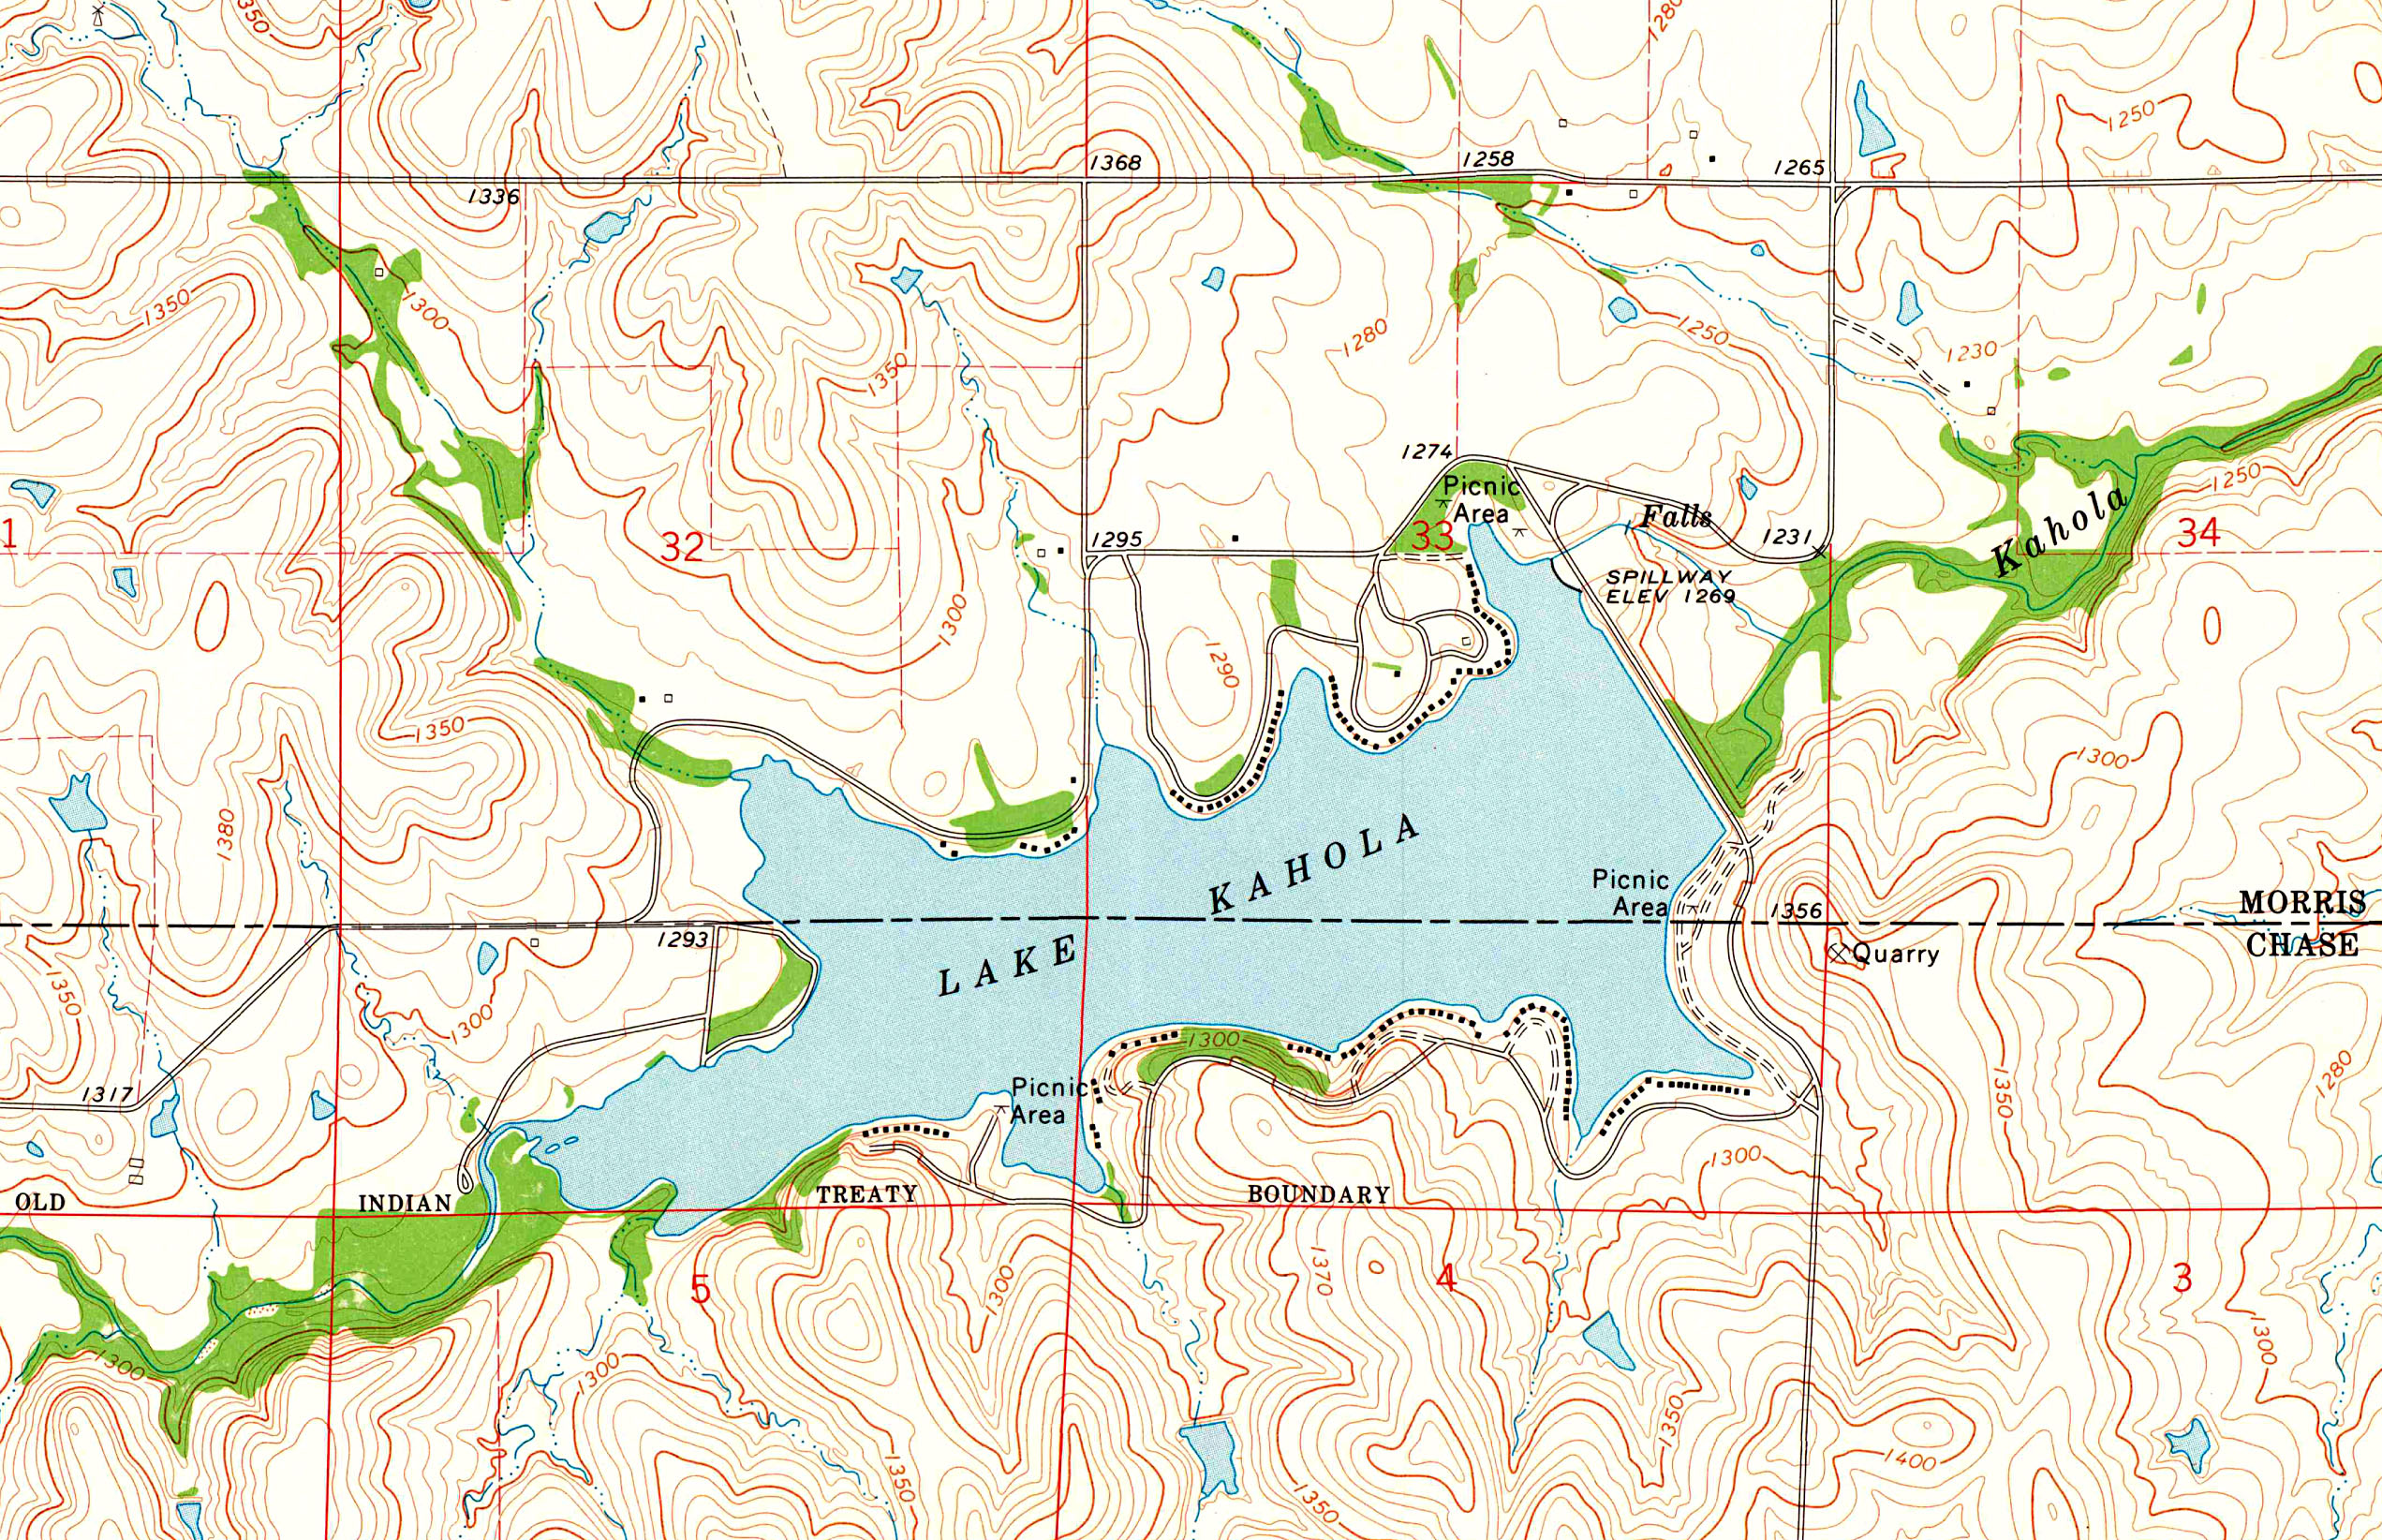 Lake Kahola Straddles The Chase Morris County Line, And An Old Indian  Treaty Boundary Runs Across The Southern Edge Of The Lake. Portion Of The  Lake Kahola, ...